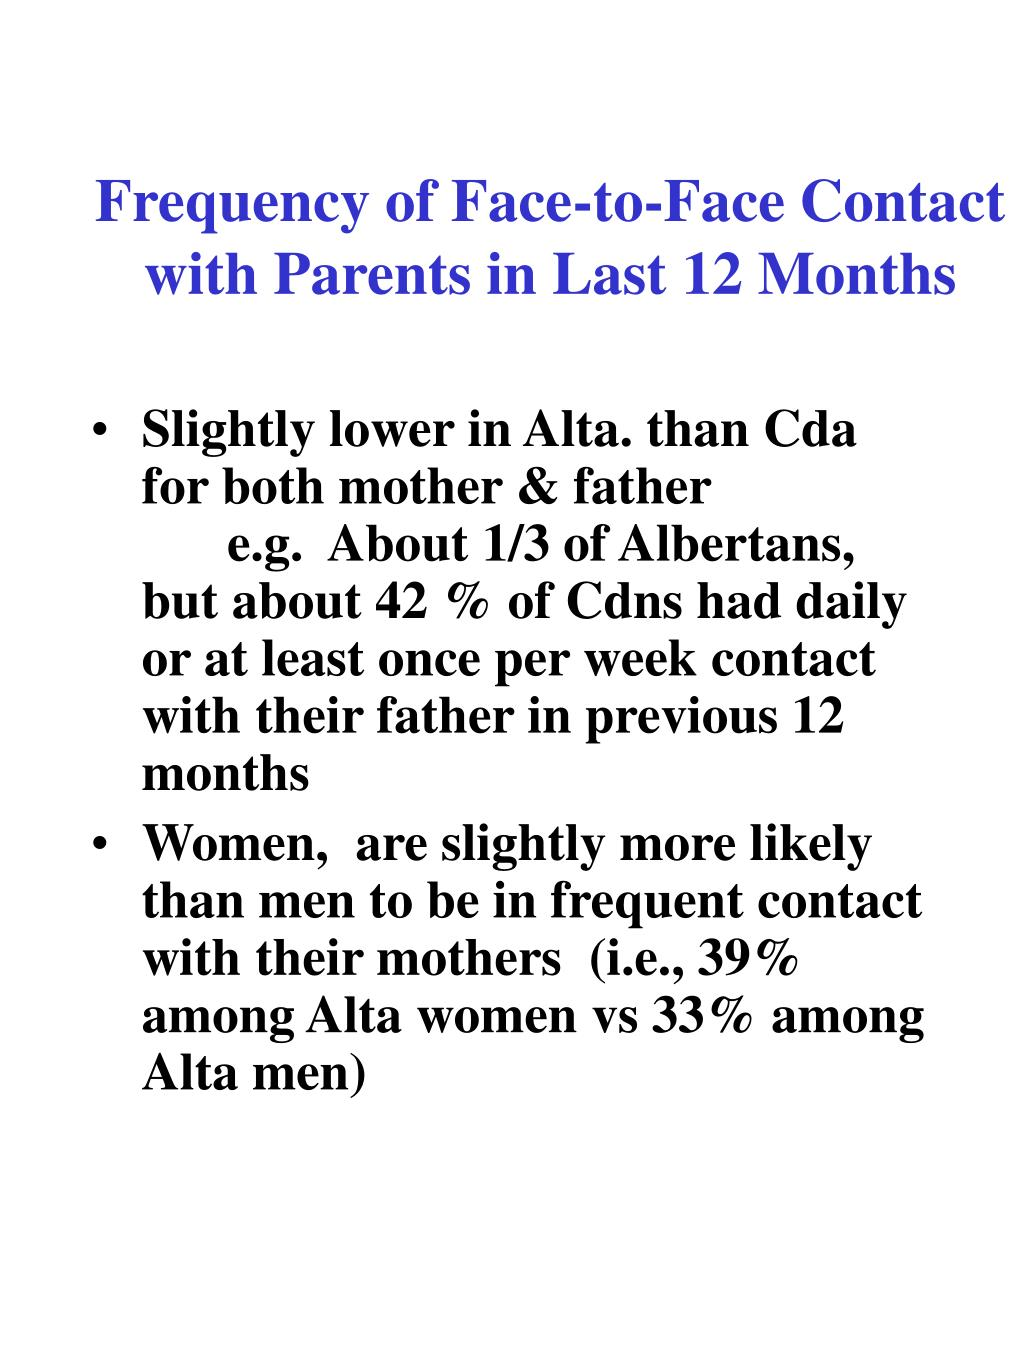 Frequency of Face-to-Face Contact with Parents in Last 12 Months